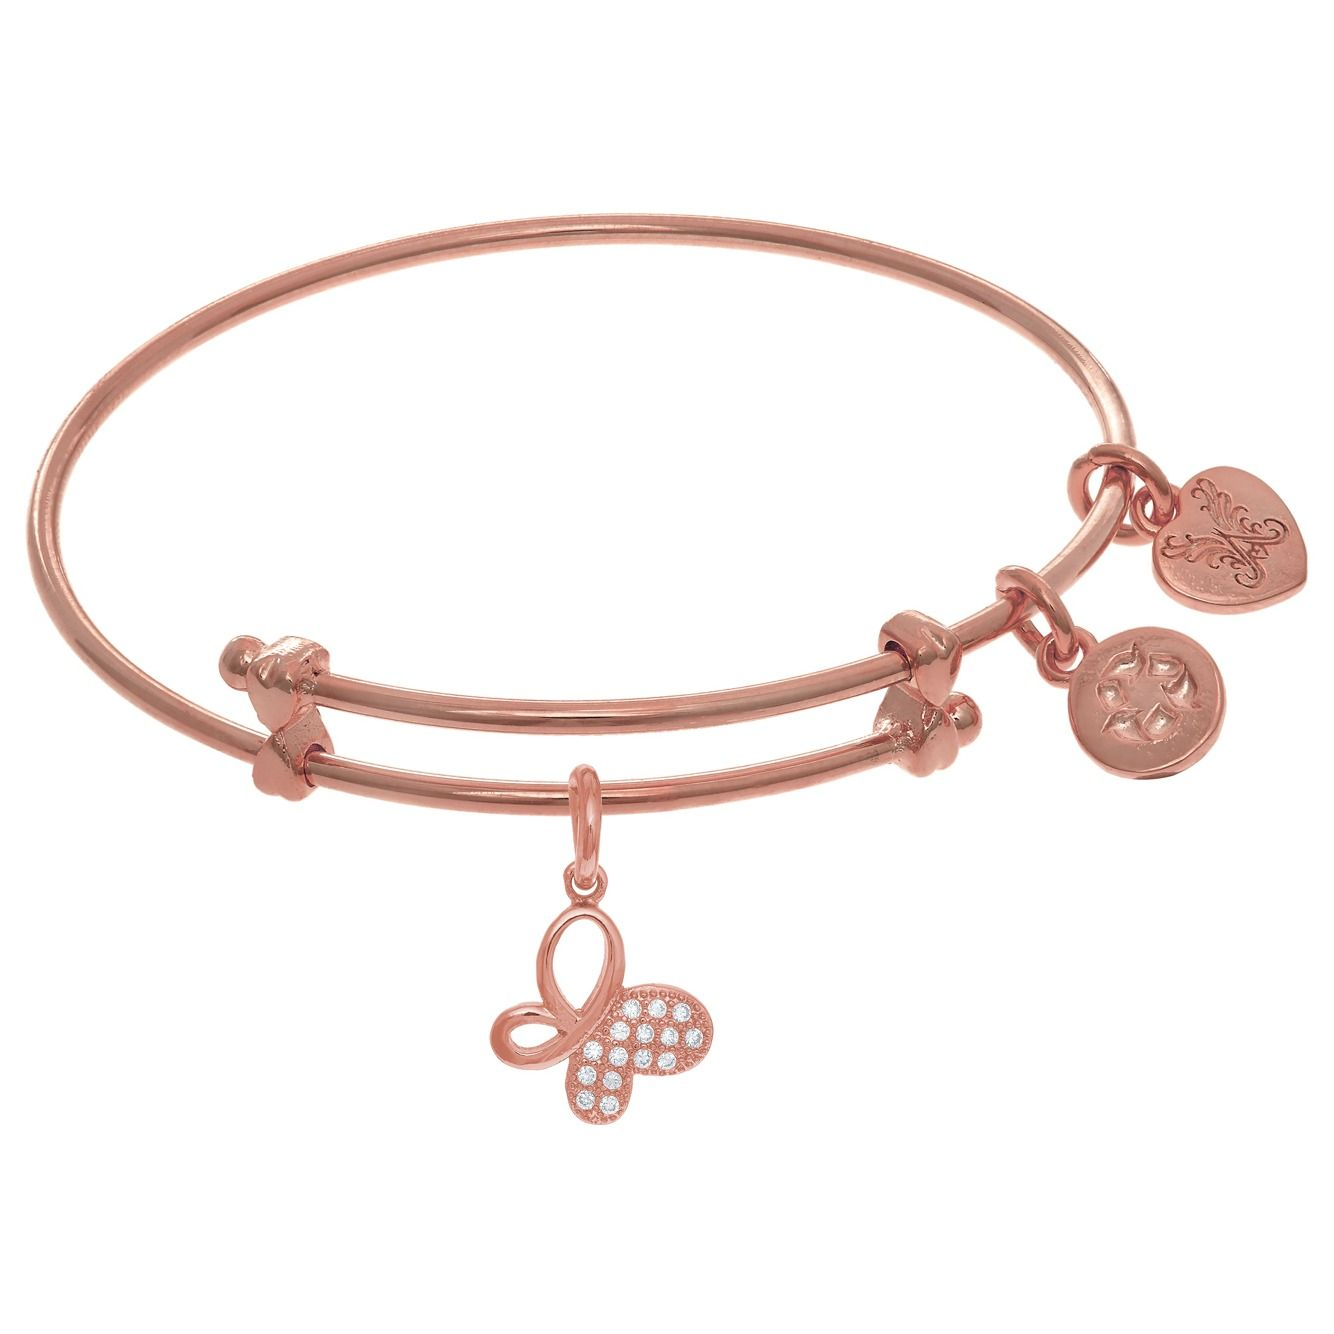 Butterfly Dangle Charm Adjustable Bangle for Tweens by Angelica Collection.  Plated brass set with CZs.  Available in the following colors: yellow, white and pink (shown).  Ref# ROY-PTGEL9079.  Goldex Fine Jewelry ~ (323 (726-7181.